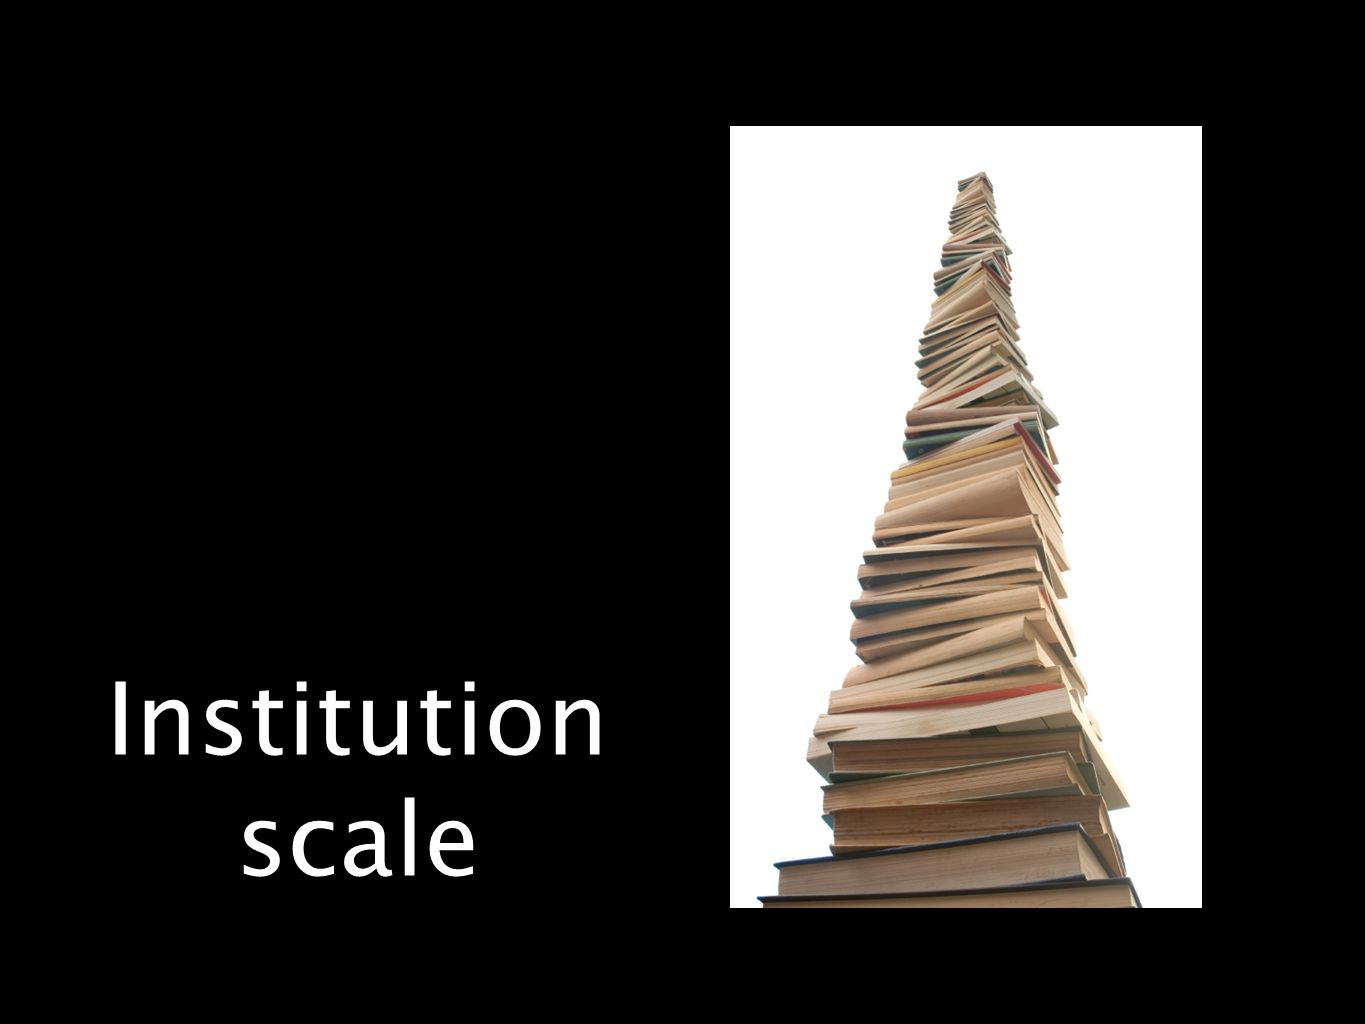 Institution scale